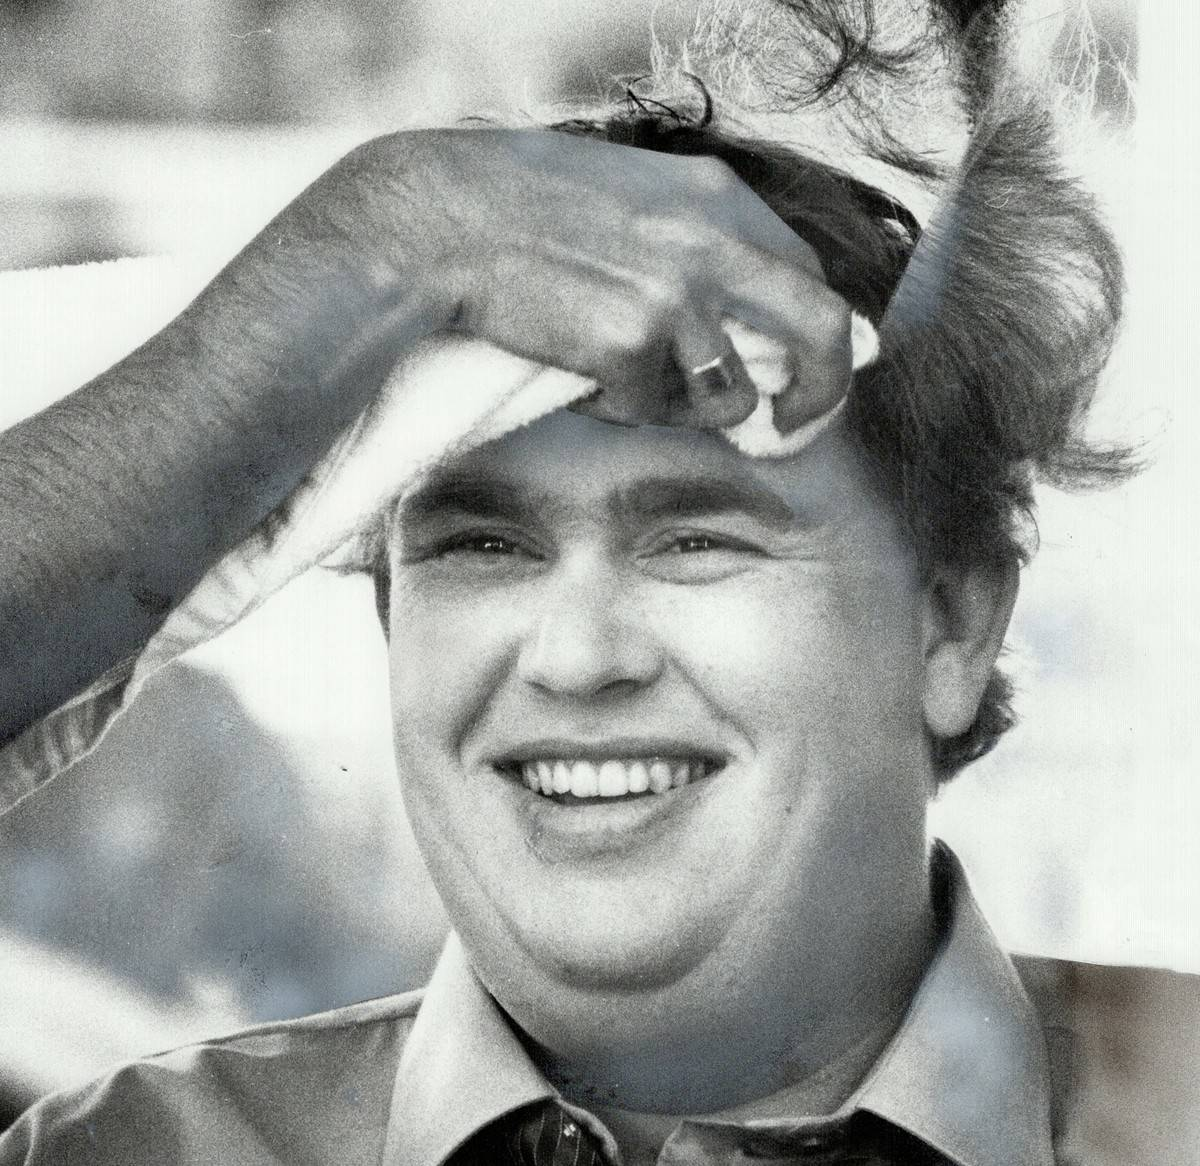 Apparently, John Candy's Hair Wasn't Real In The 80s